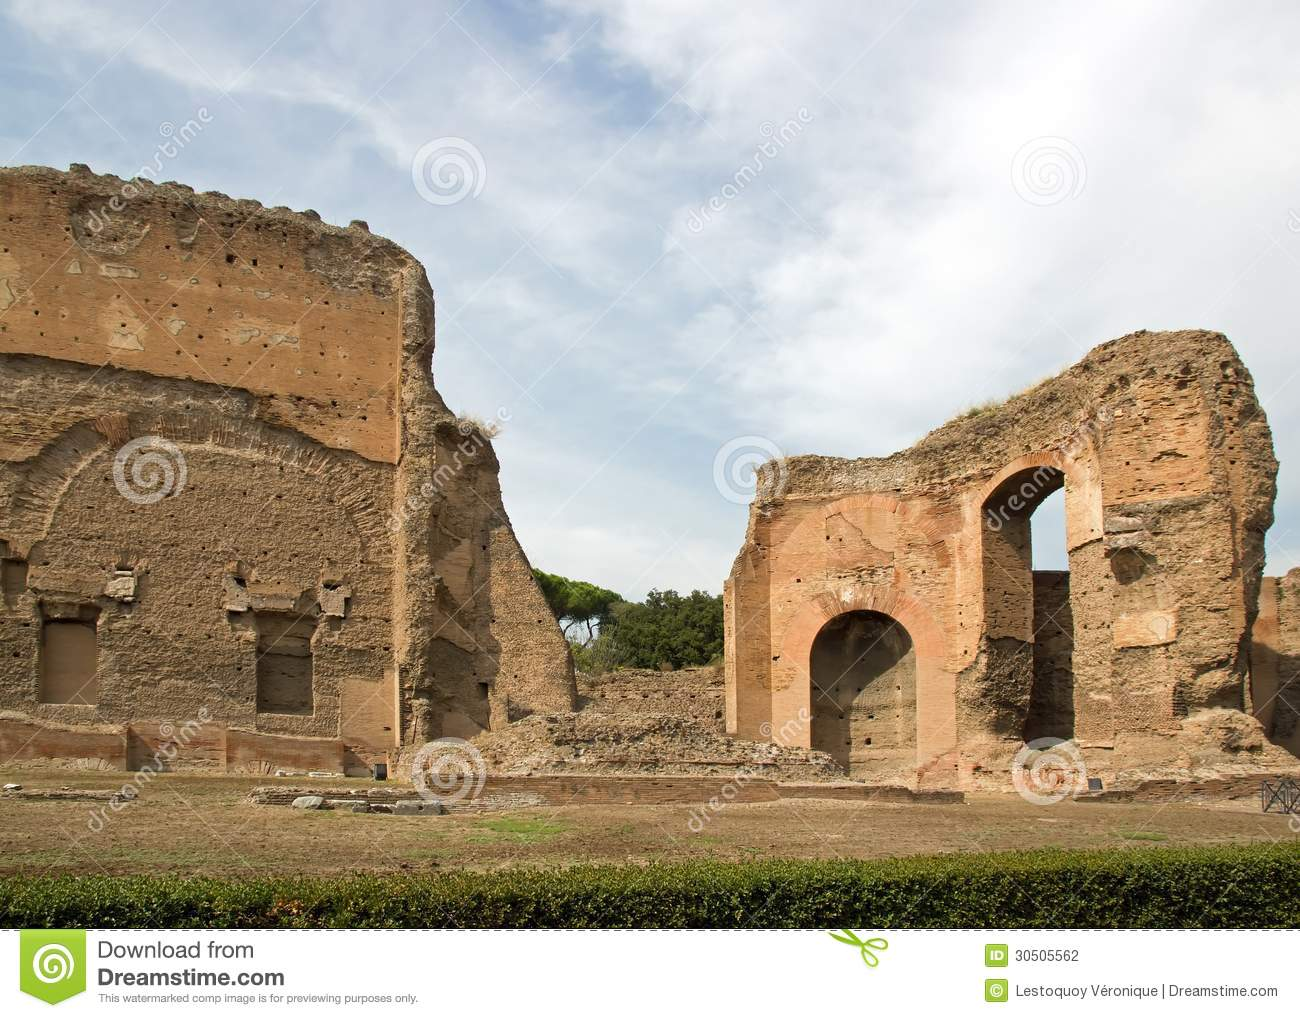 the baths of caracalla The baths of caracalla were located in the city of rome, the capital of the roman empire they were opened in 217 ad by emperor caracalla as one of his public works.